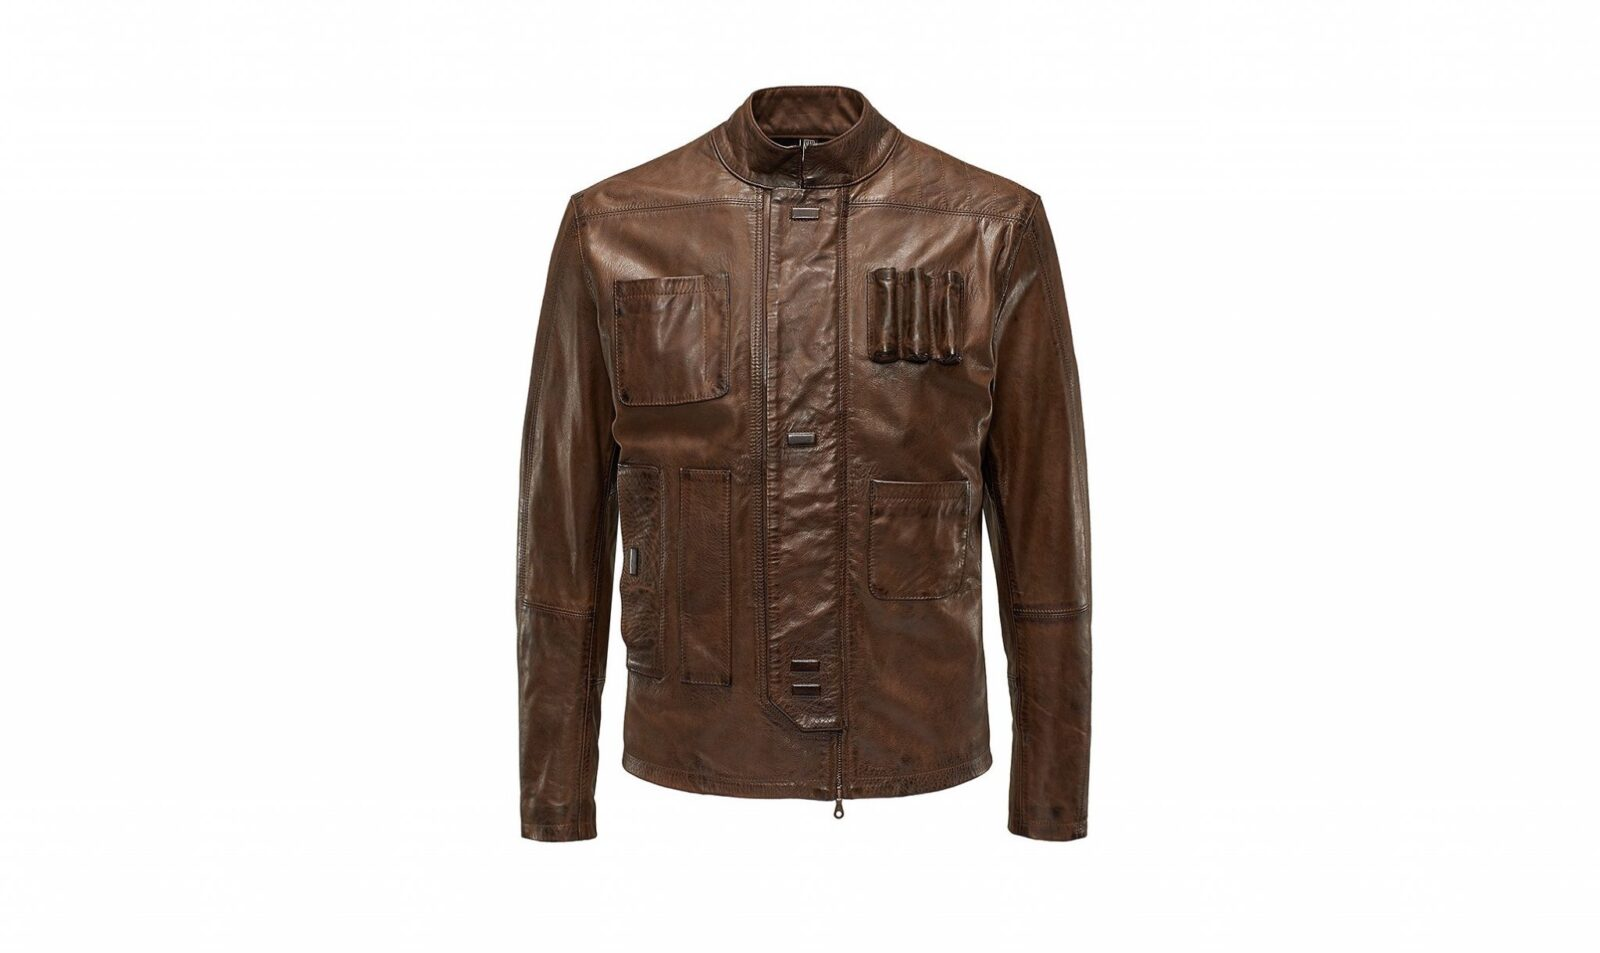 Han Solo Jacket 1600x953 - The Official Han Solo Jacket